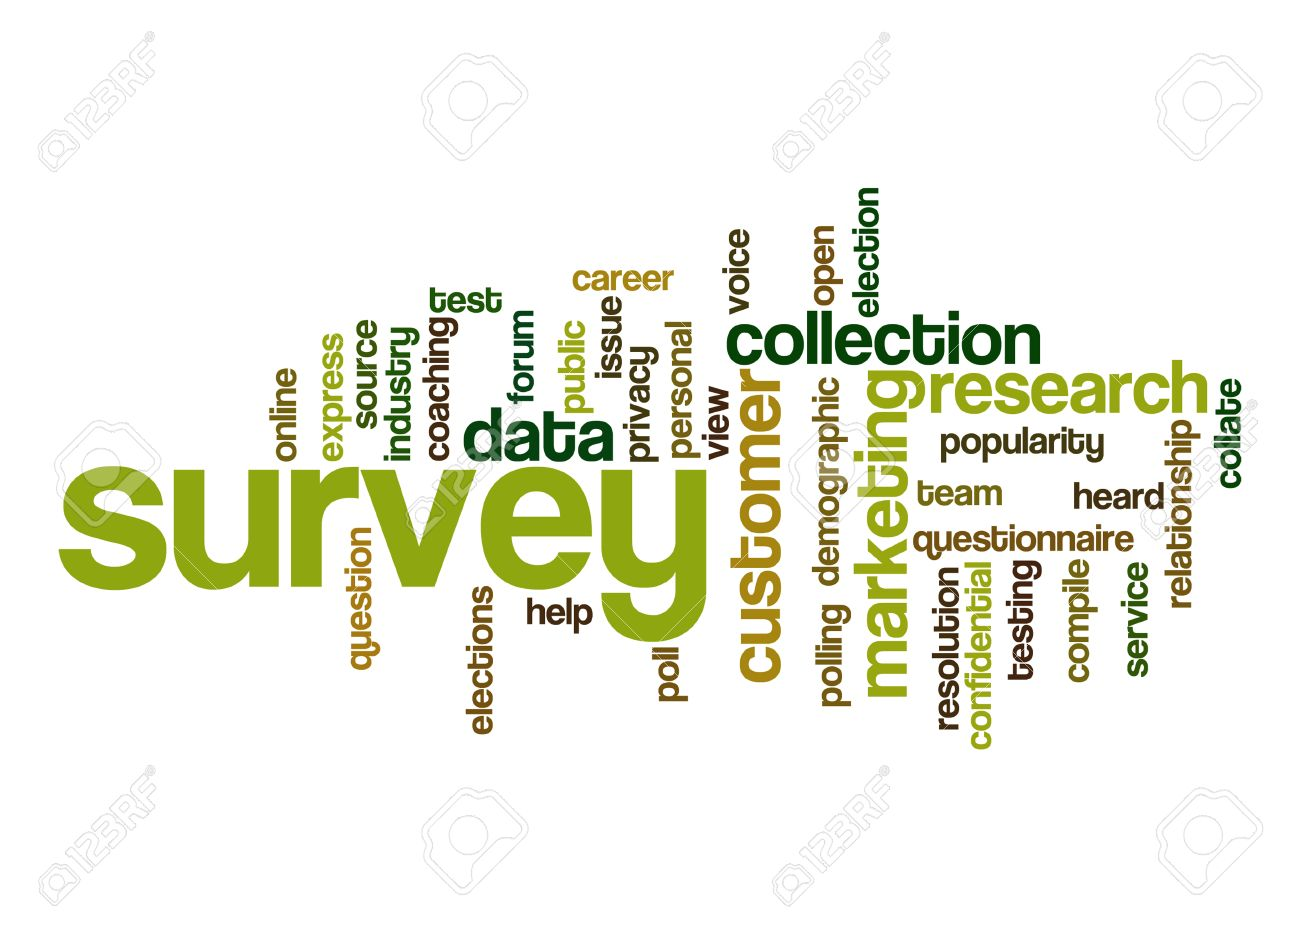 annual survey got a minute tell me about yourself working survey word cloud